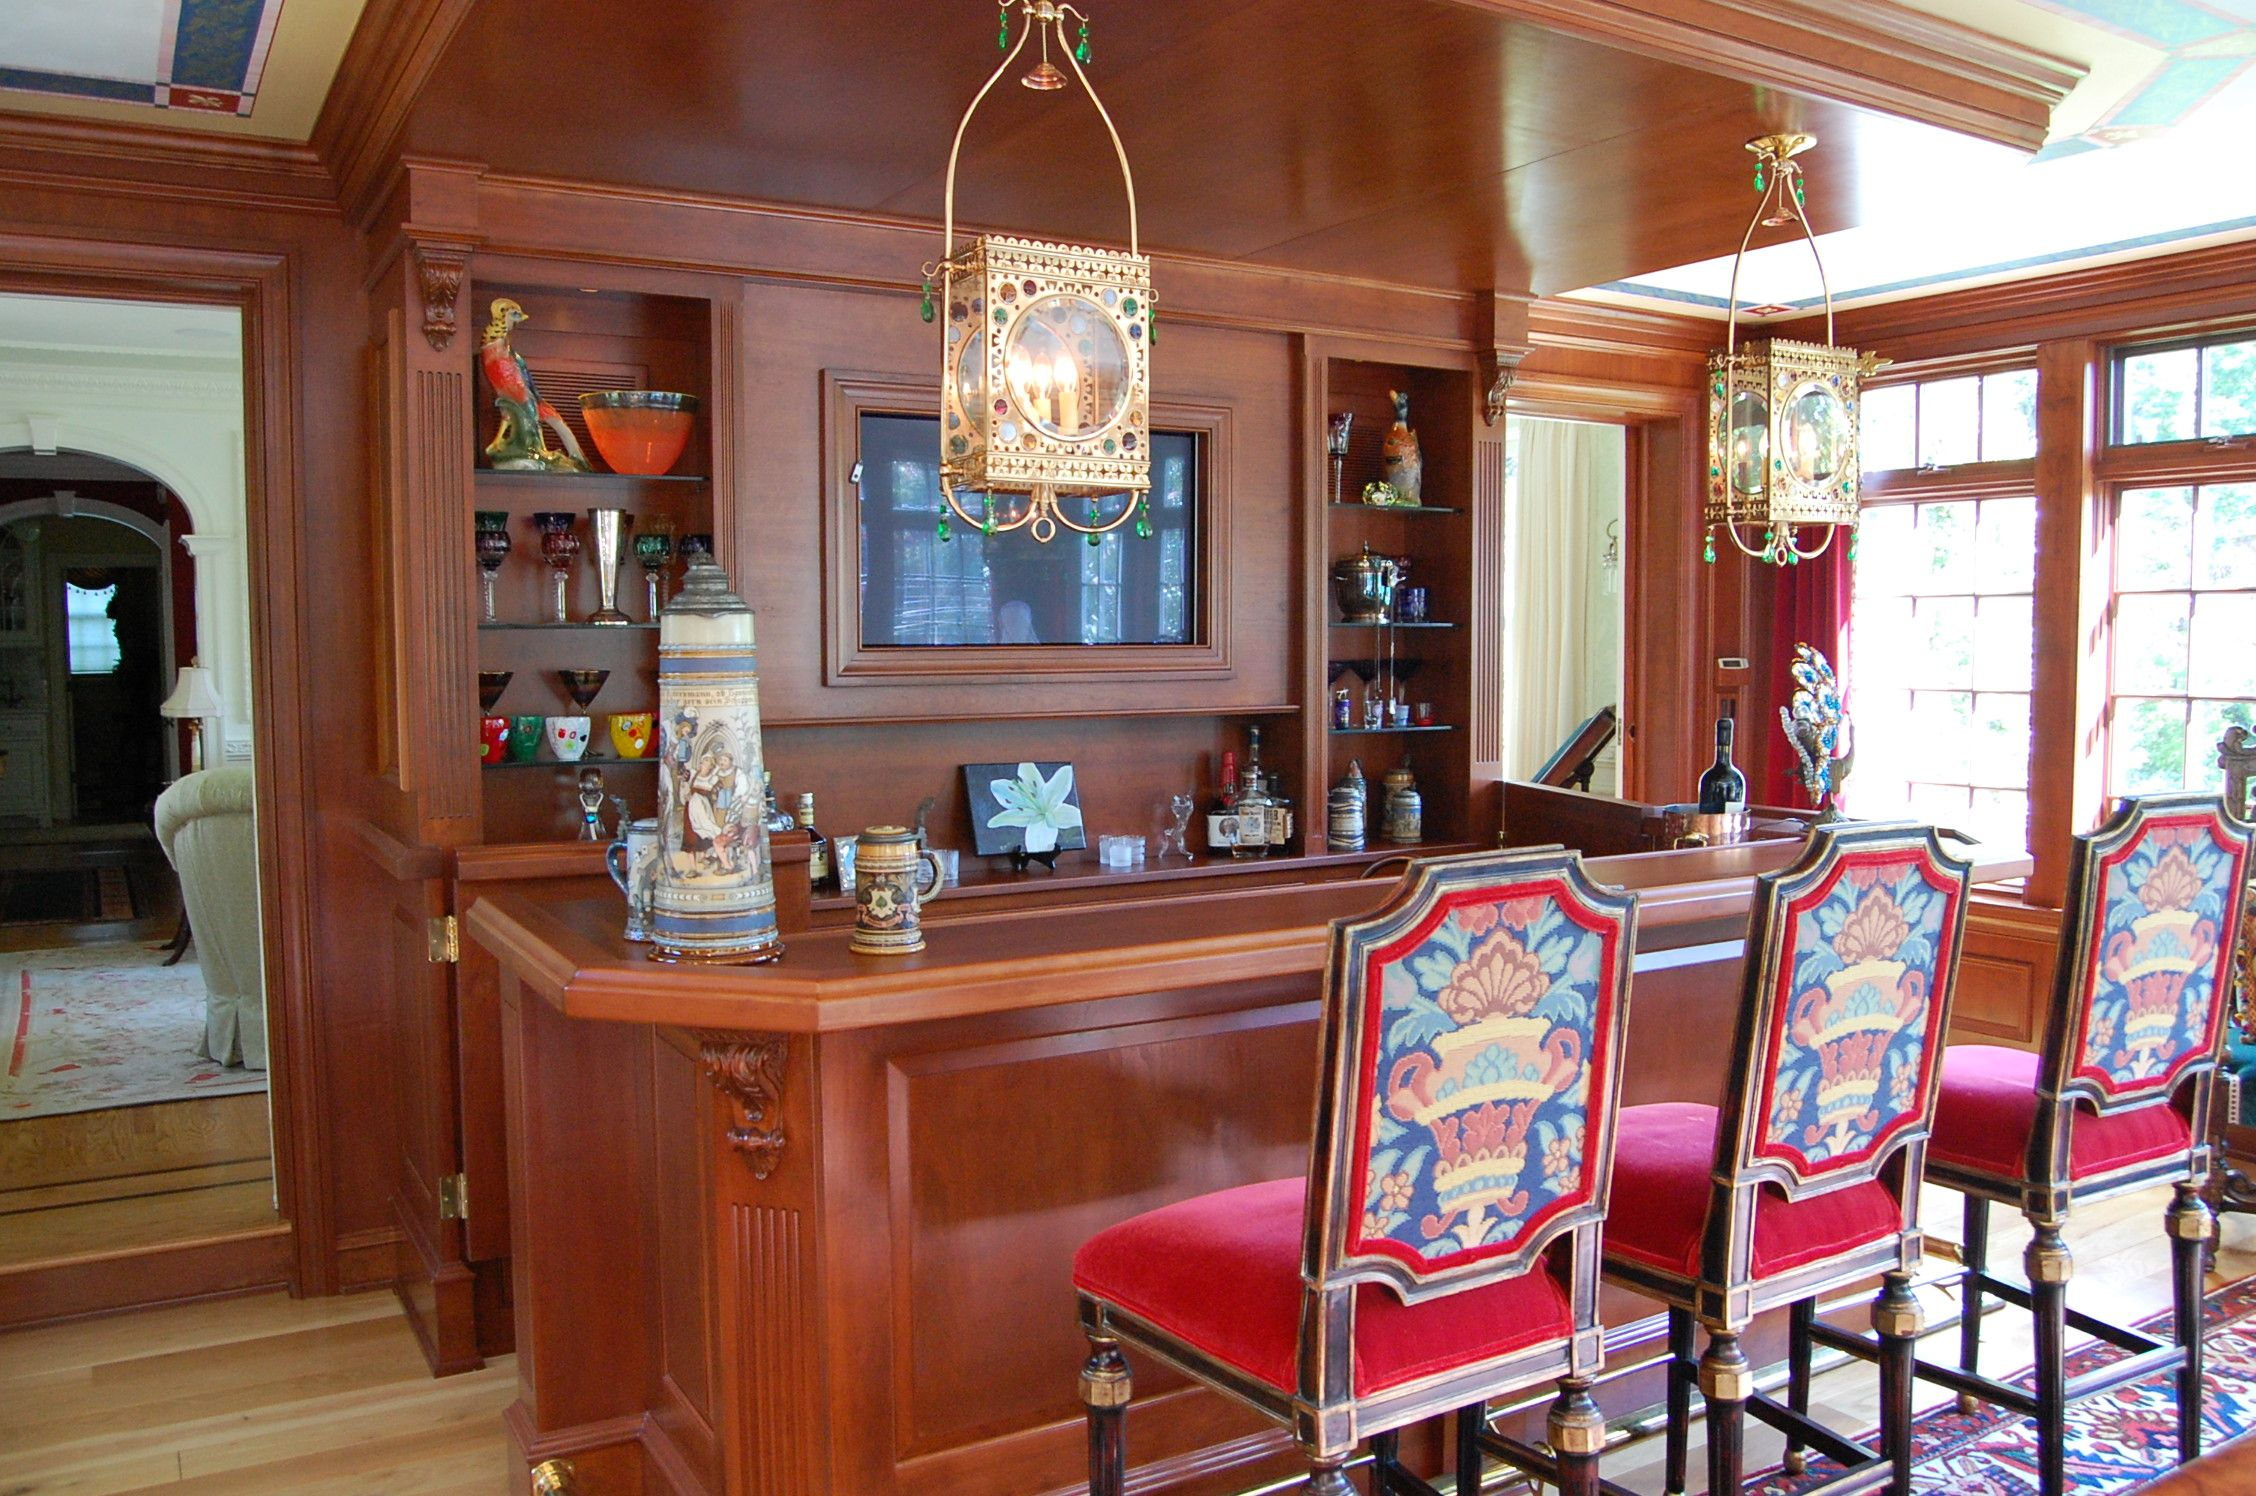 Find ideas for remodeling your basement into your fantasy space or simply finish it with hgtv's basement flooring and color ideas. Cherry Game Room with Paneling and Bar, Haddonfield, NJ ...